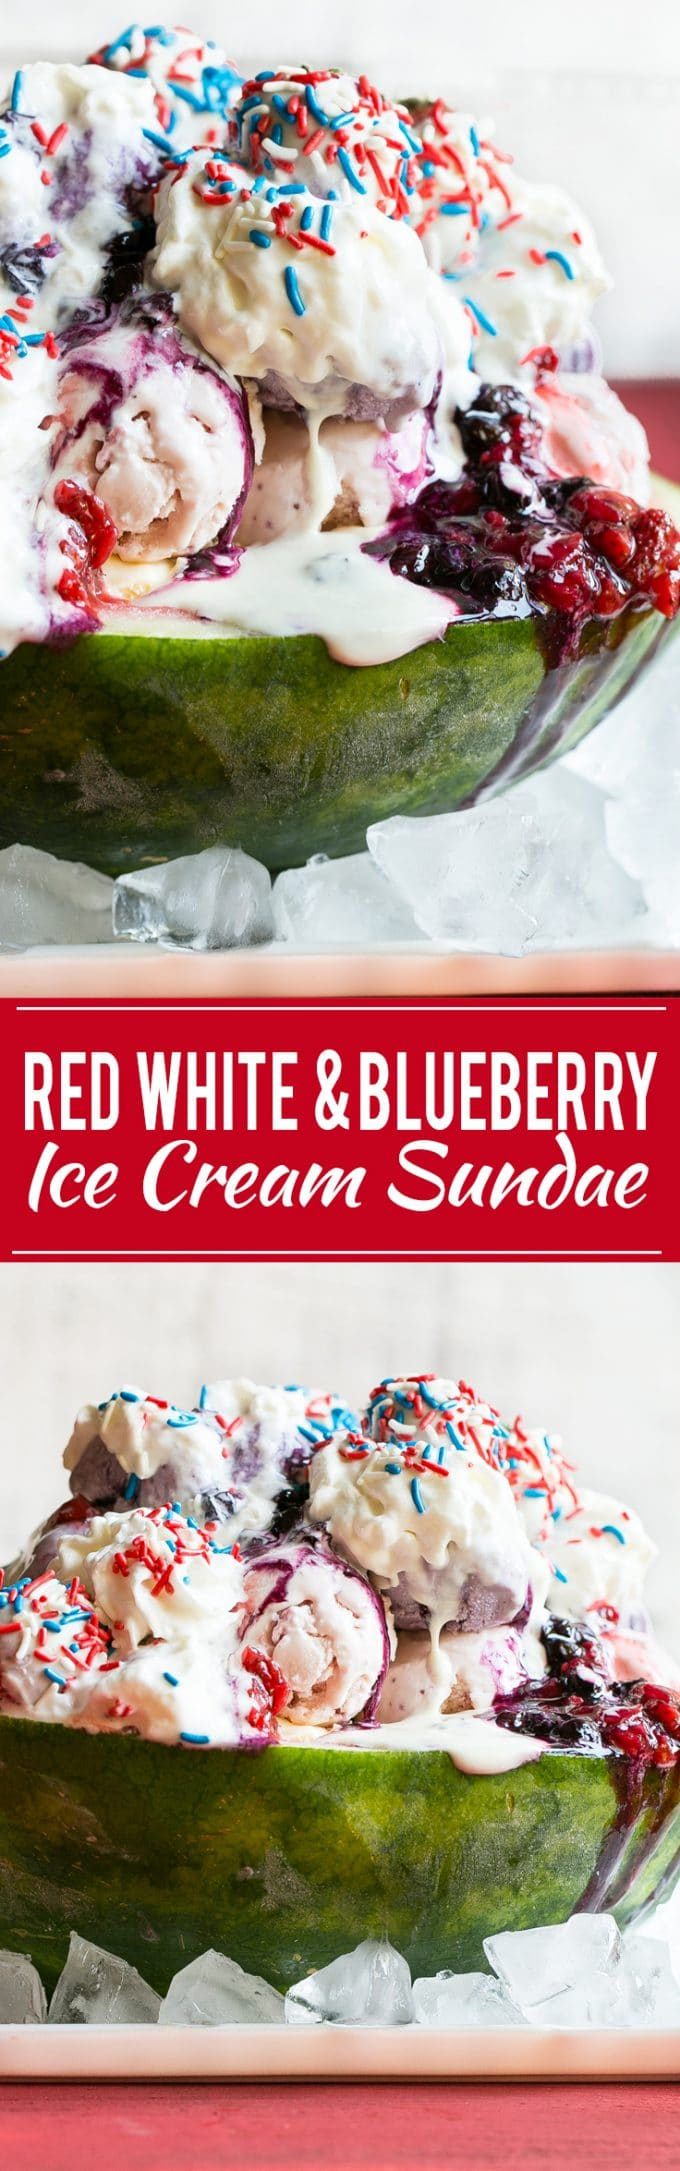 Red White and Blueberry Sundae Recipe | Blueberry Sauce Sundae | Strawberry Sauce Sundae | Marshmallow Topping Sundae | Strawberry Blueberry Marshmallow Sundae